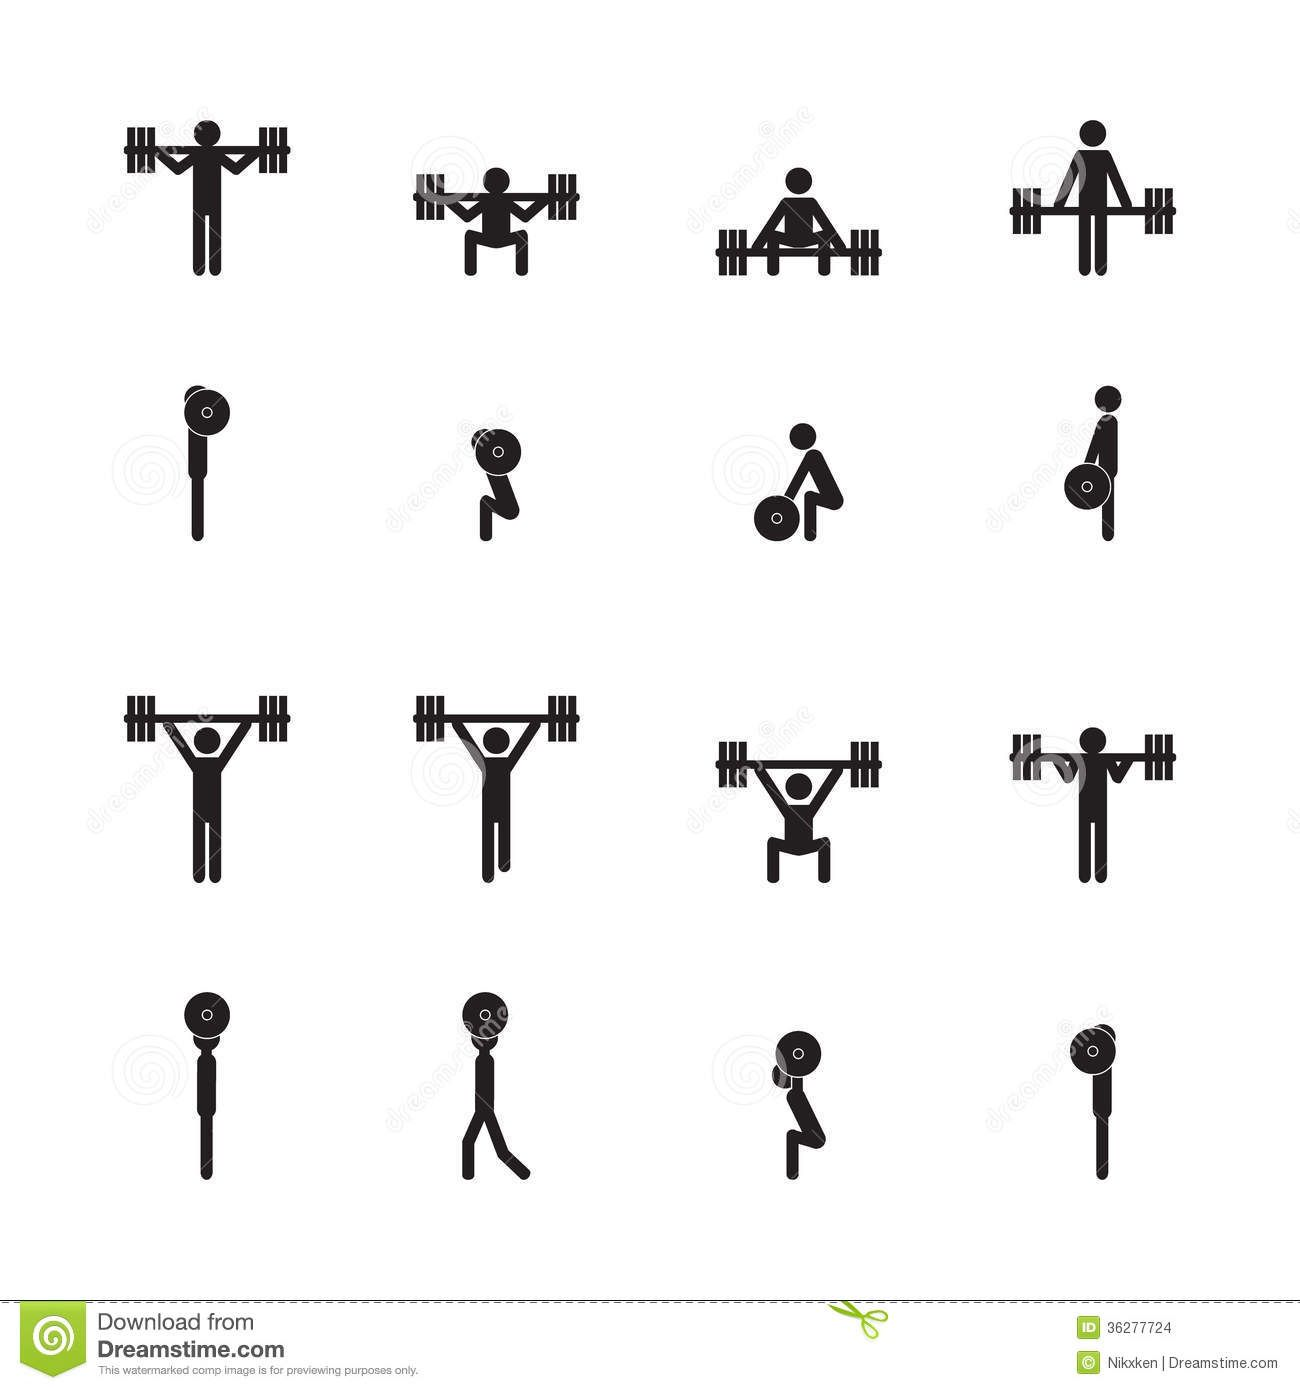 Svg Olympic Lifts